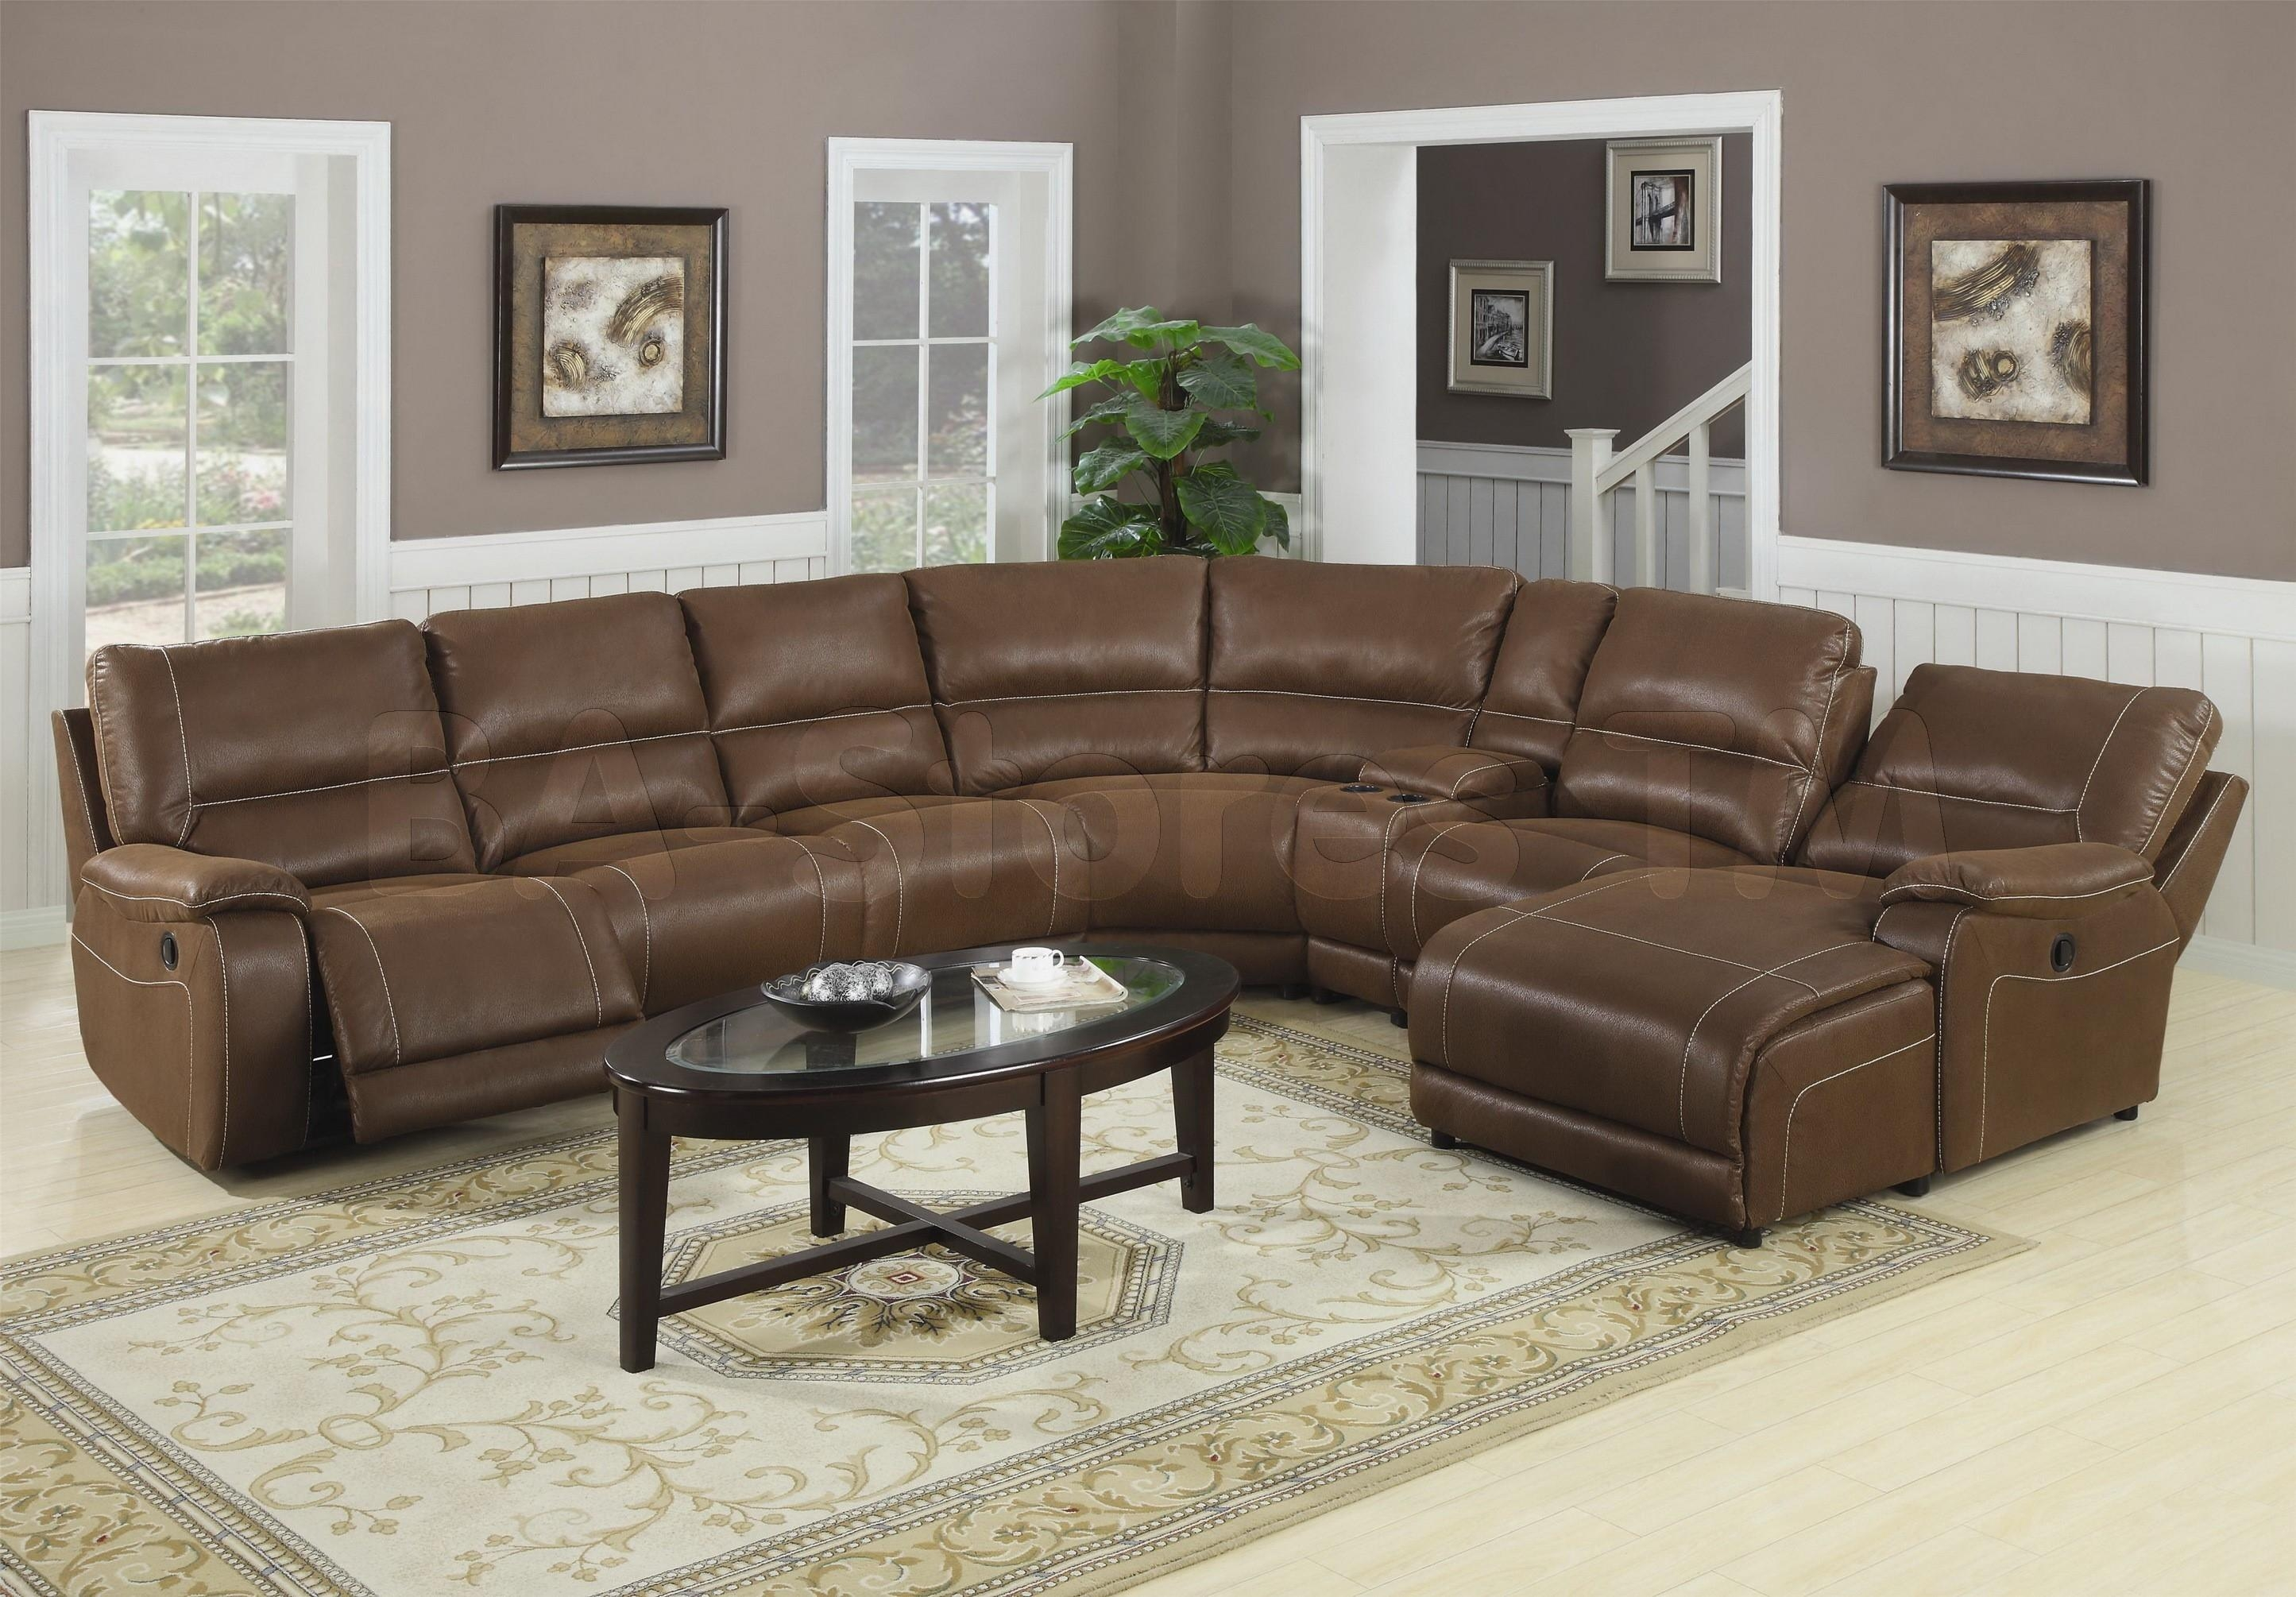 Leather Sofas | Umpsa 78 Sofas Inside High Quality Leather Sectional (View 17 of 20)